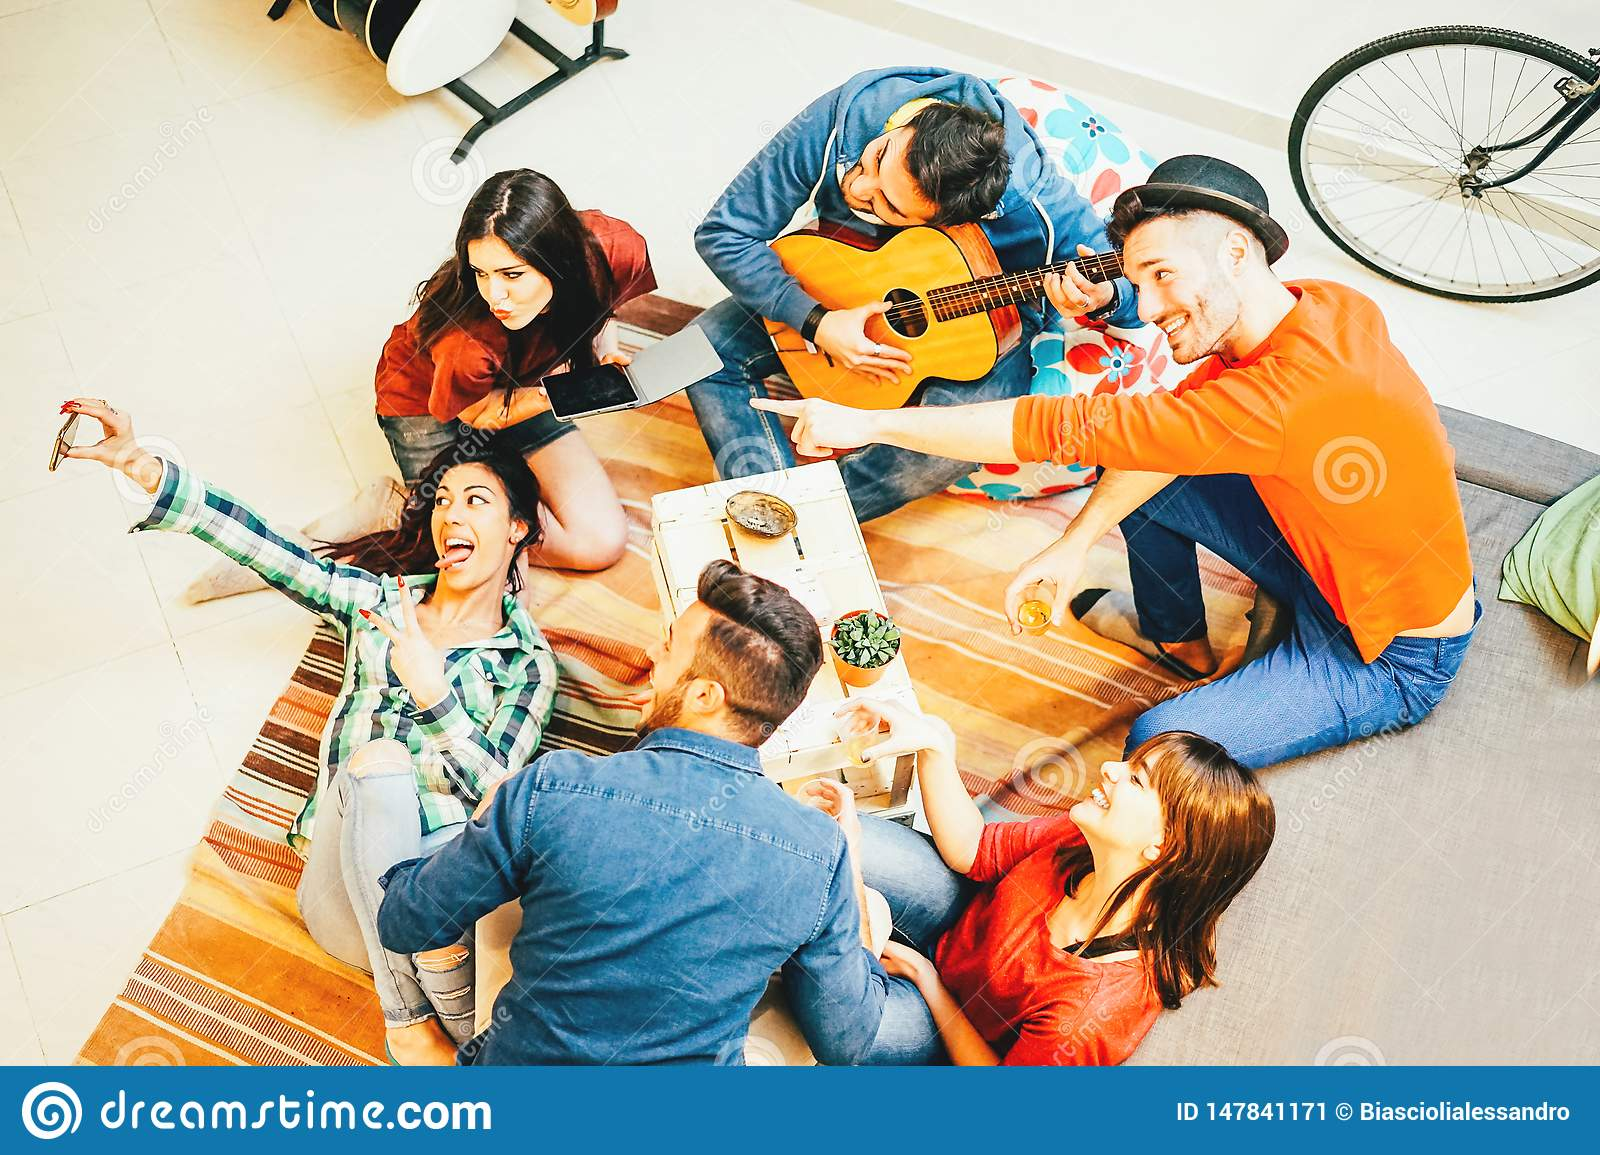 Group of funny friends enjoying together playing music with guitar and taking selfie with mobile phone